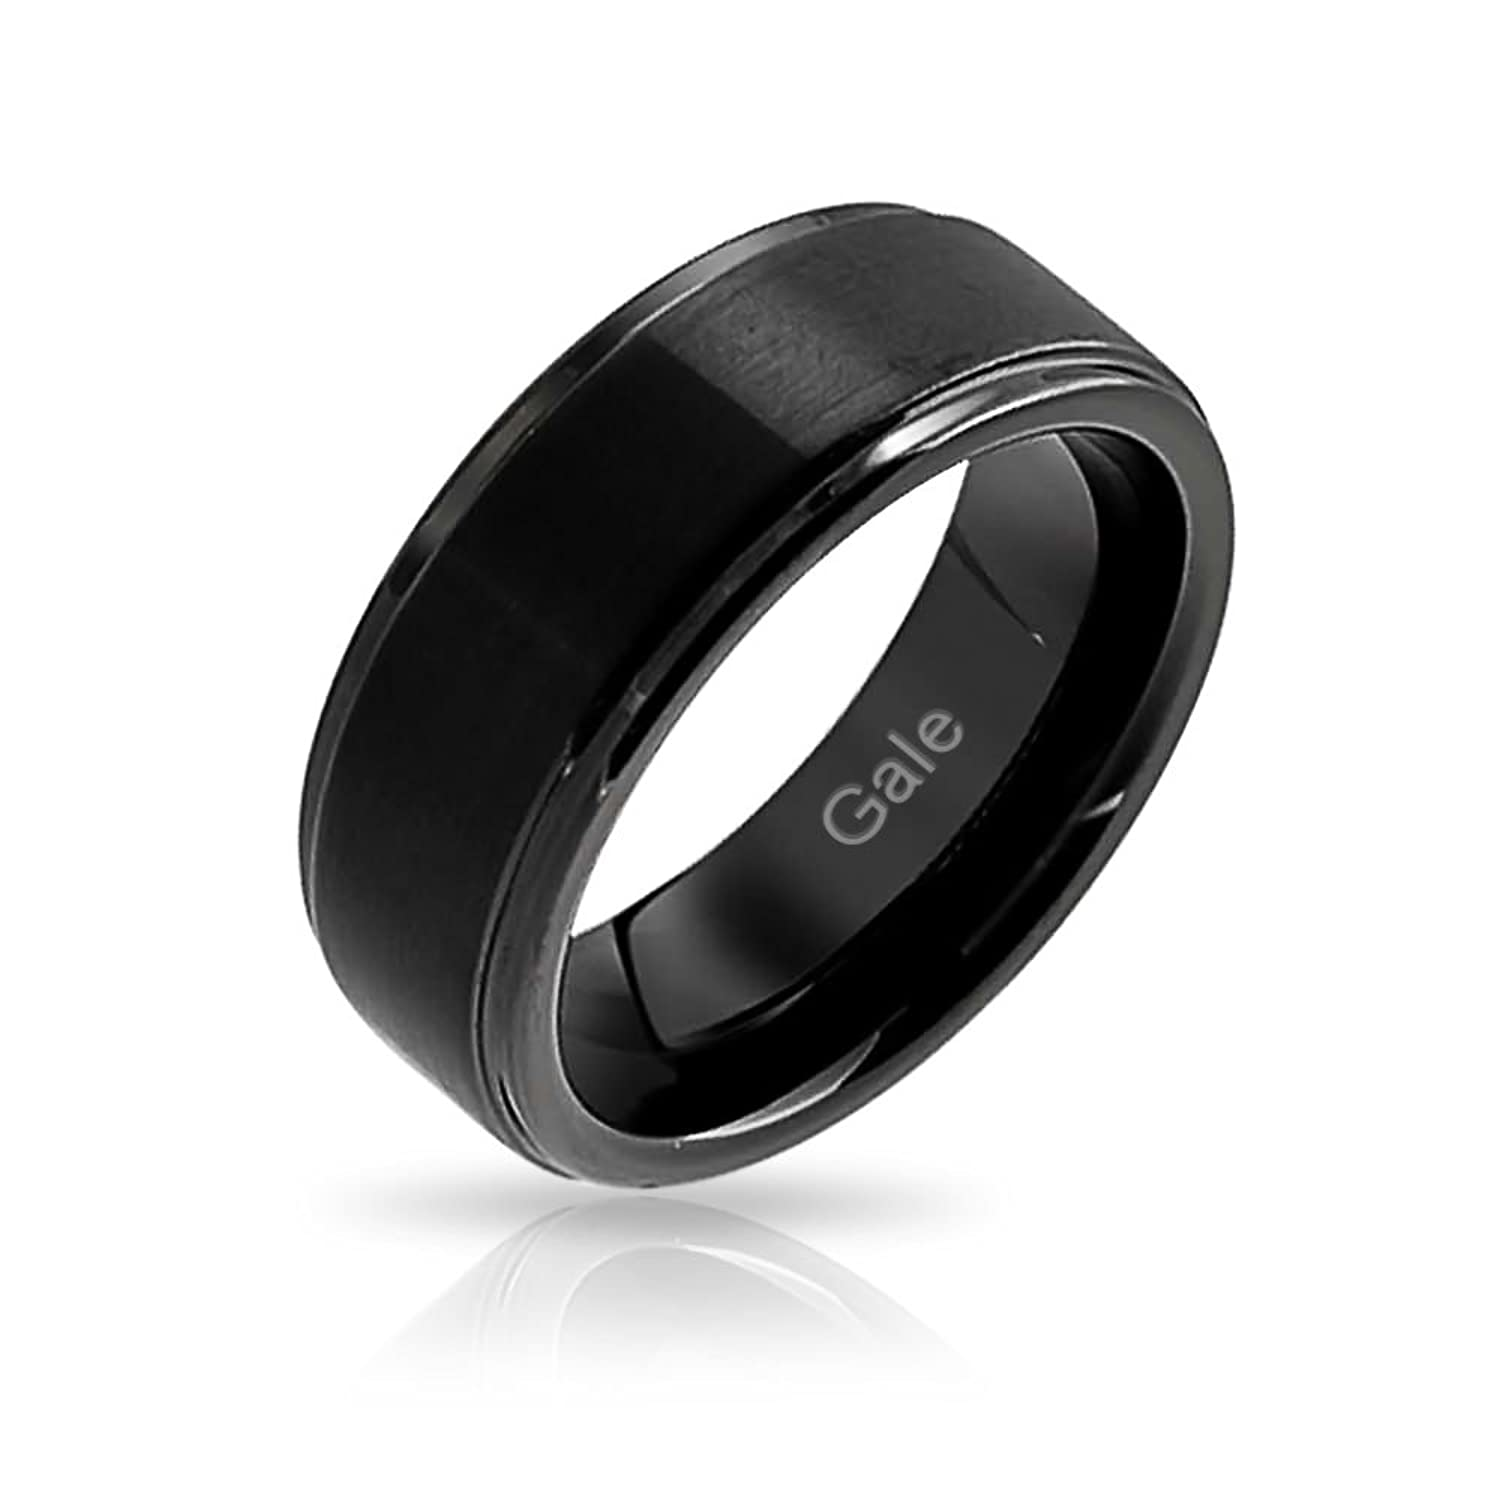 This is a photo of Bling Jewelry Unisex Matte Black Tungsten Wedding Band 42mm